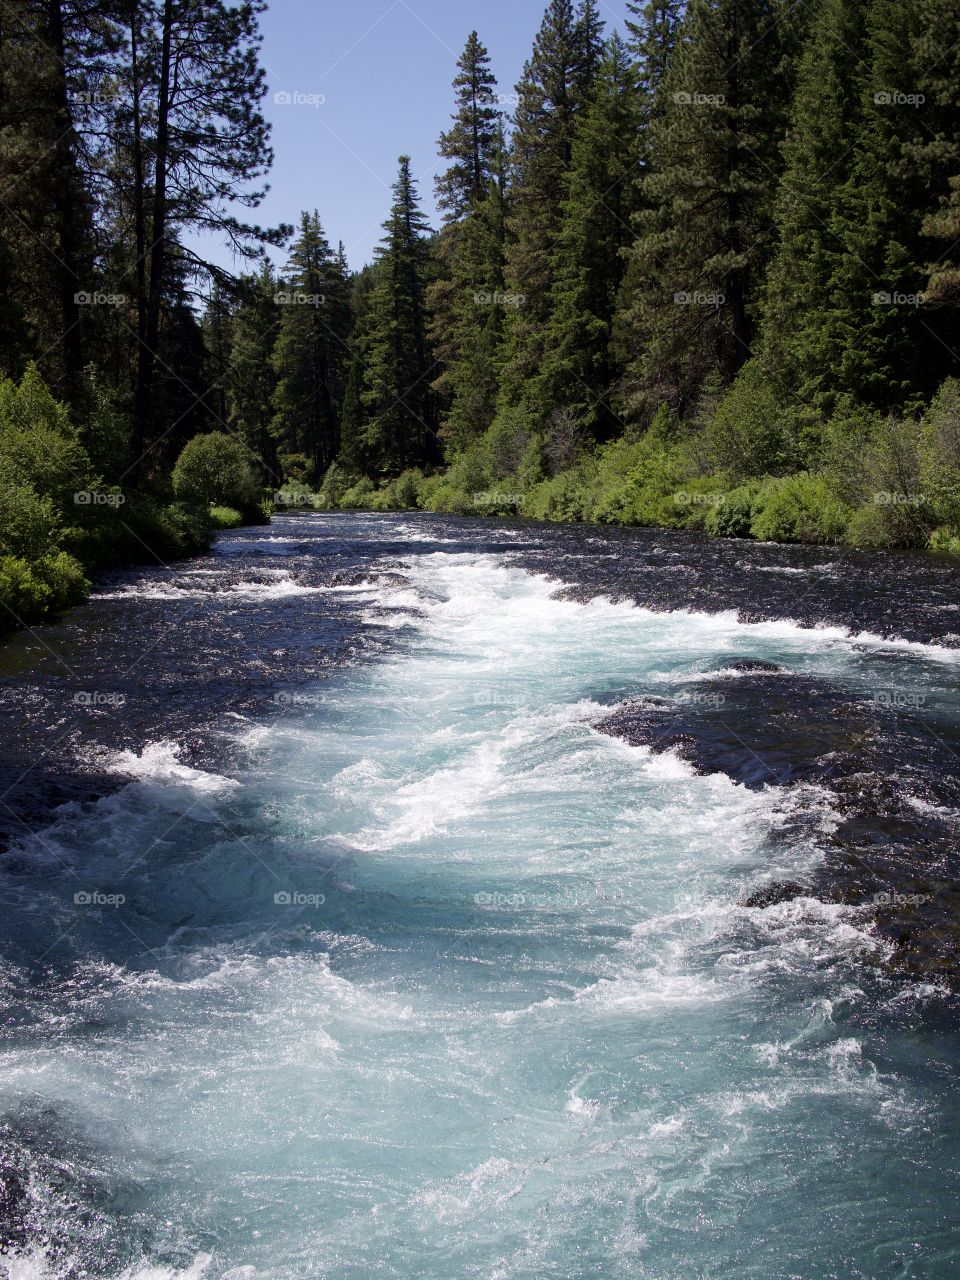 The absolutely stunning turquoise waters of Wizard Falls in the Metolius River on a sunny summer morning in Central Oregon.